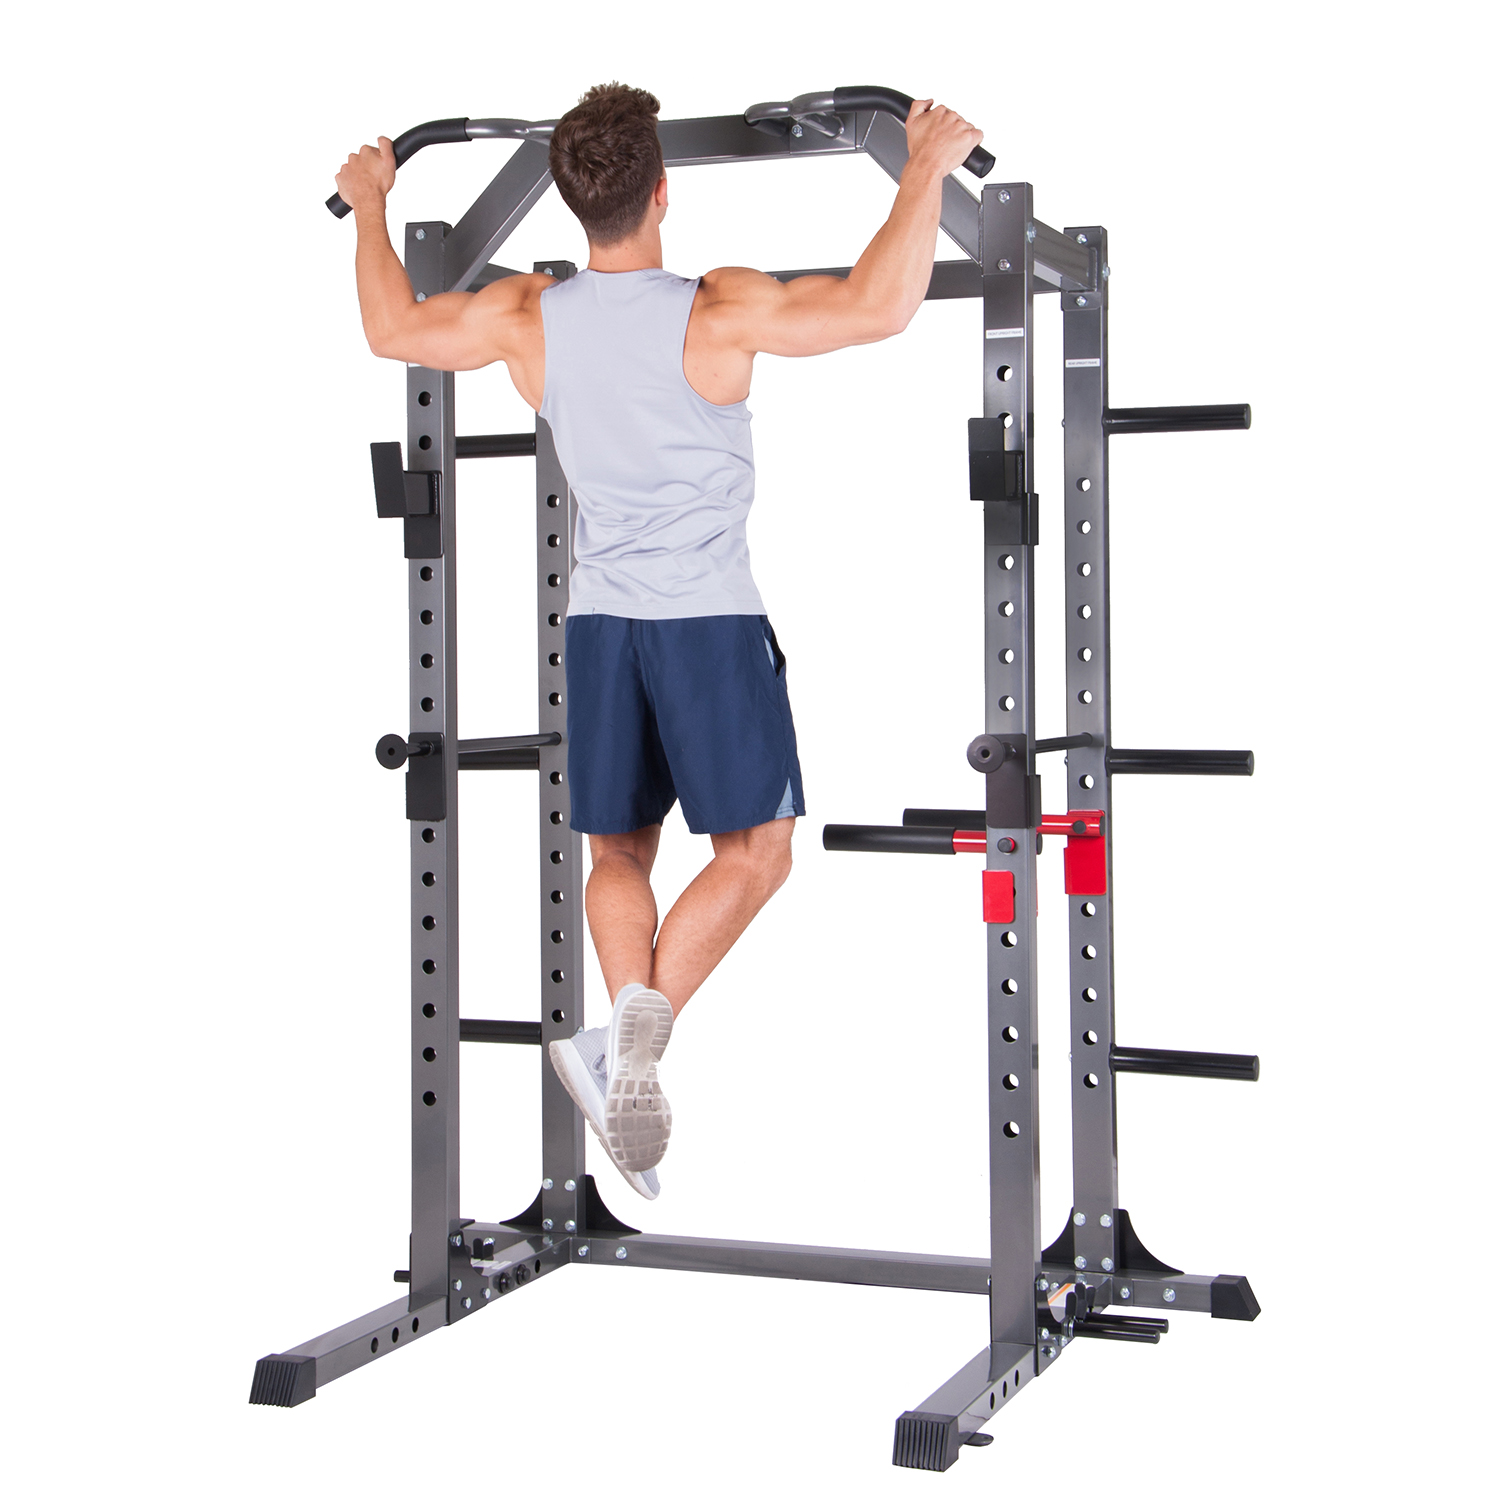 Body power pbc deluxe power rack cage system walmart